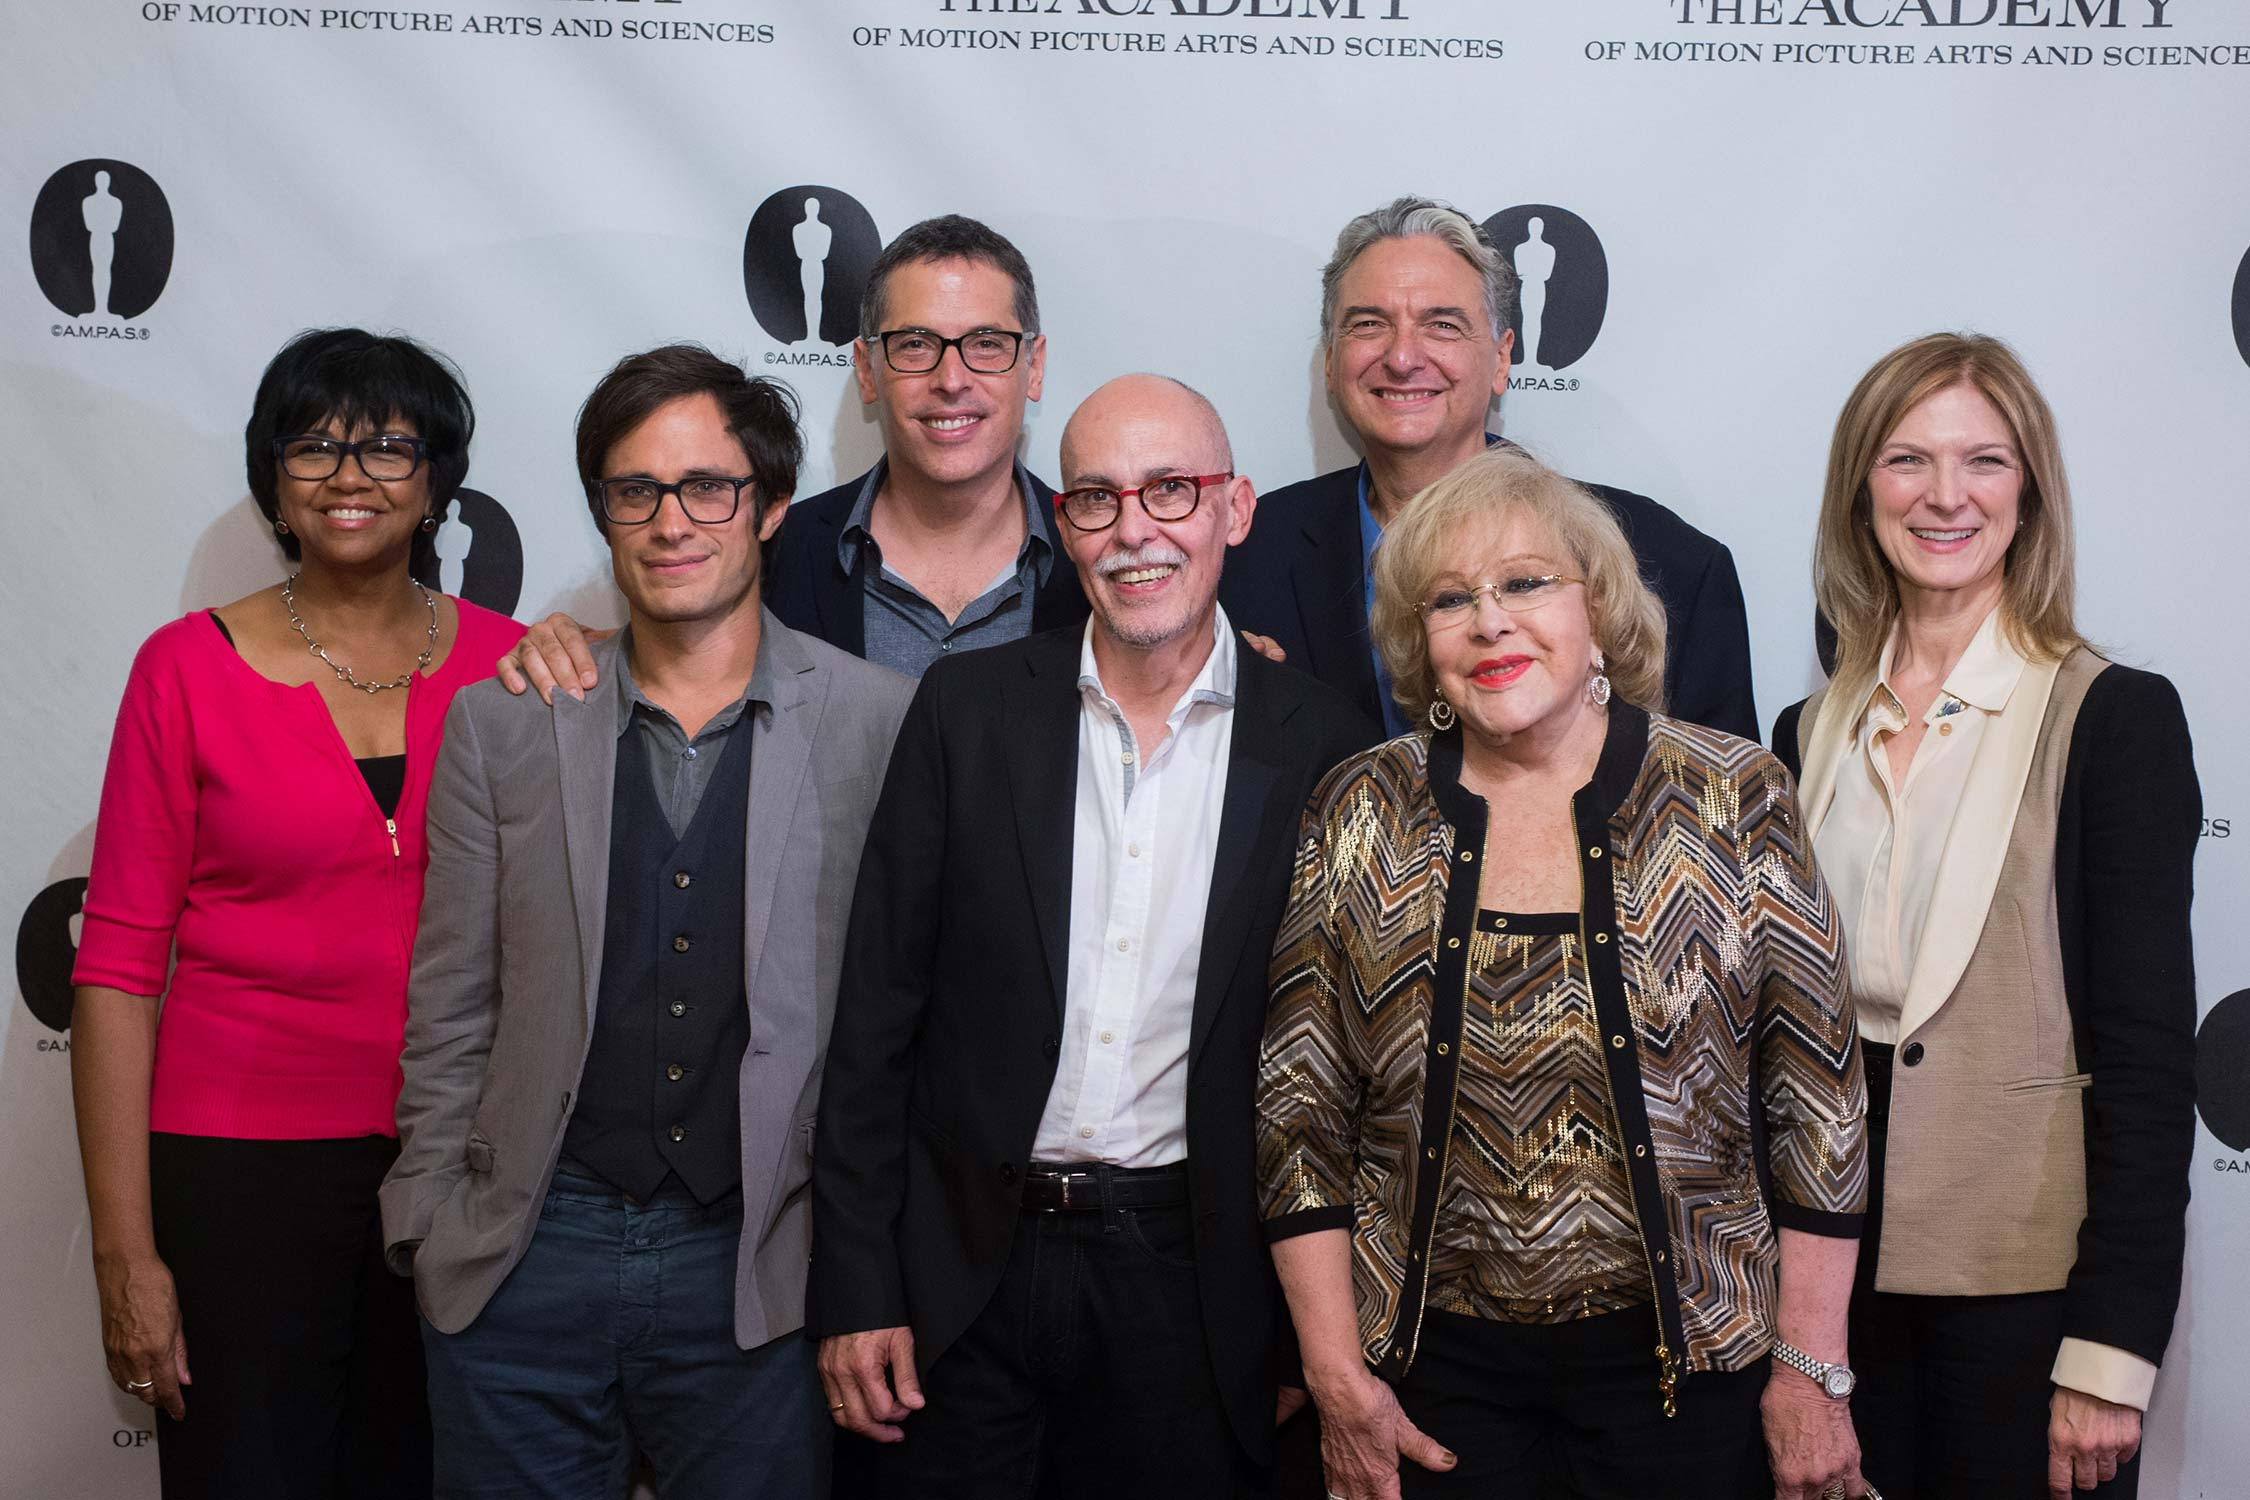 Pictured (left to right): Cheryl Boone Isaacs, Gael García Bernal, Rodrigo Prieto, Gabriel Figueroa Flores, Silvia Pinal, Gregory Nava and Dawn Hudson.